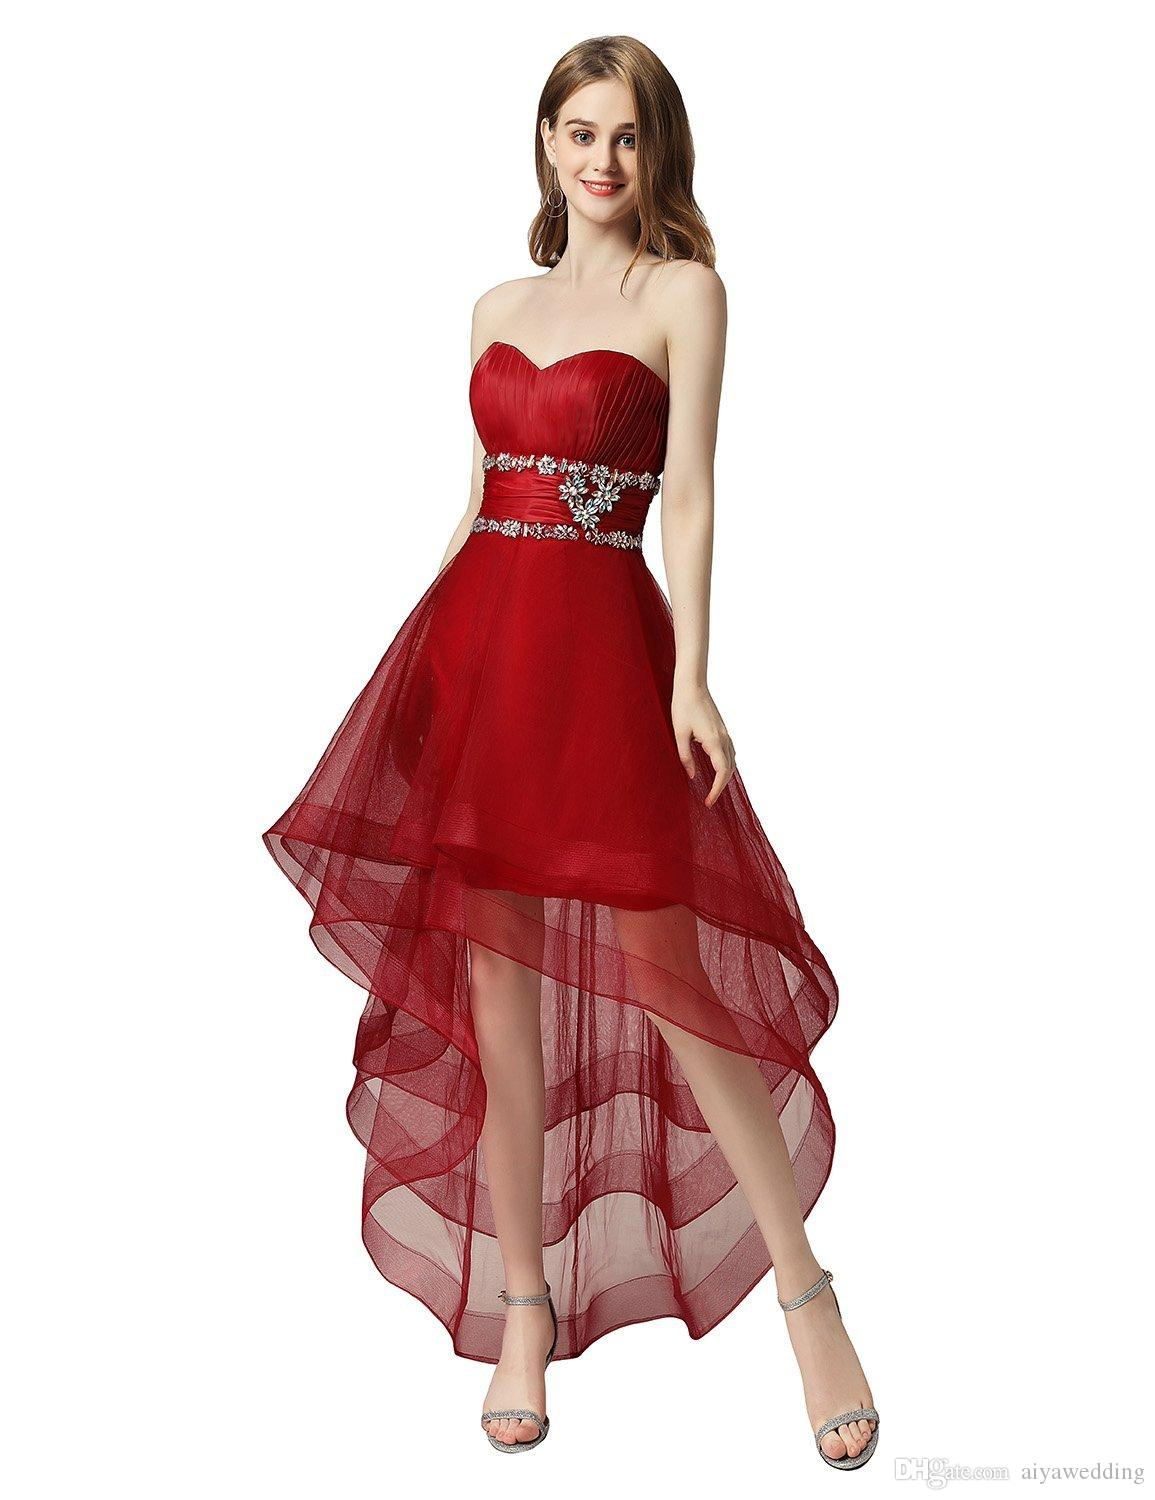 2019 Sweetheart High Low Homecoming Dresses Red Open Back Crystal Party Evening Gowns Vestido de fiesta